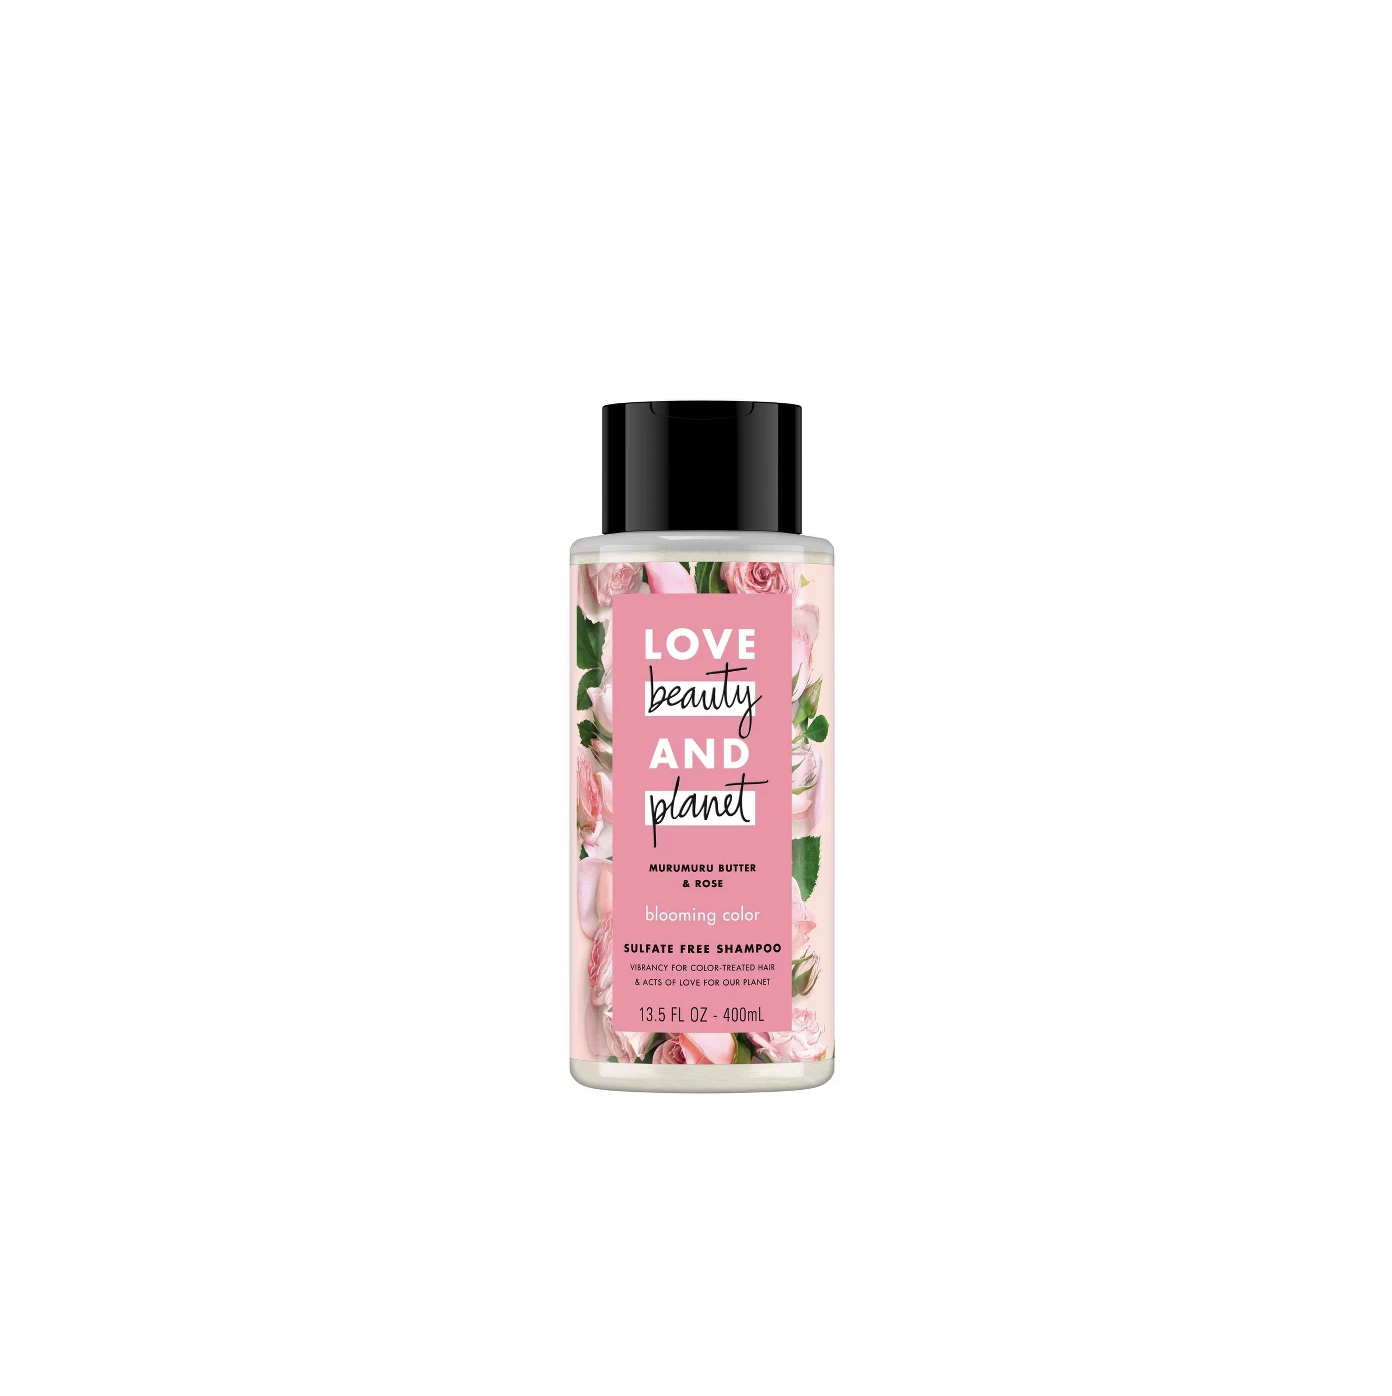 Blooming Color Shampoo